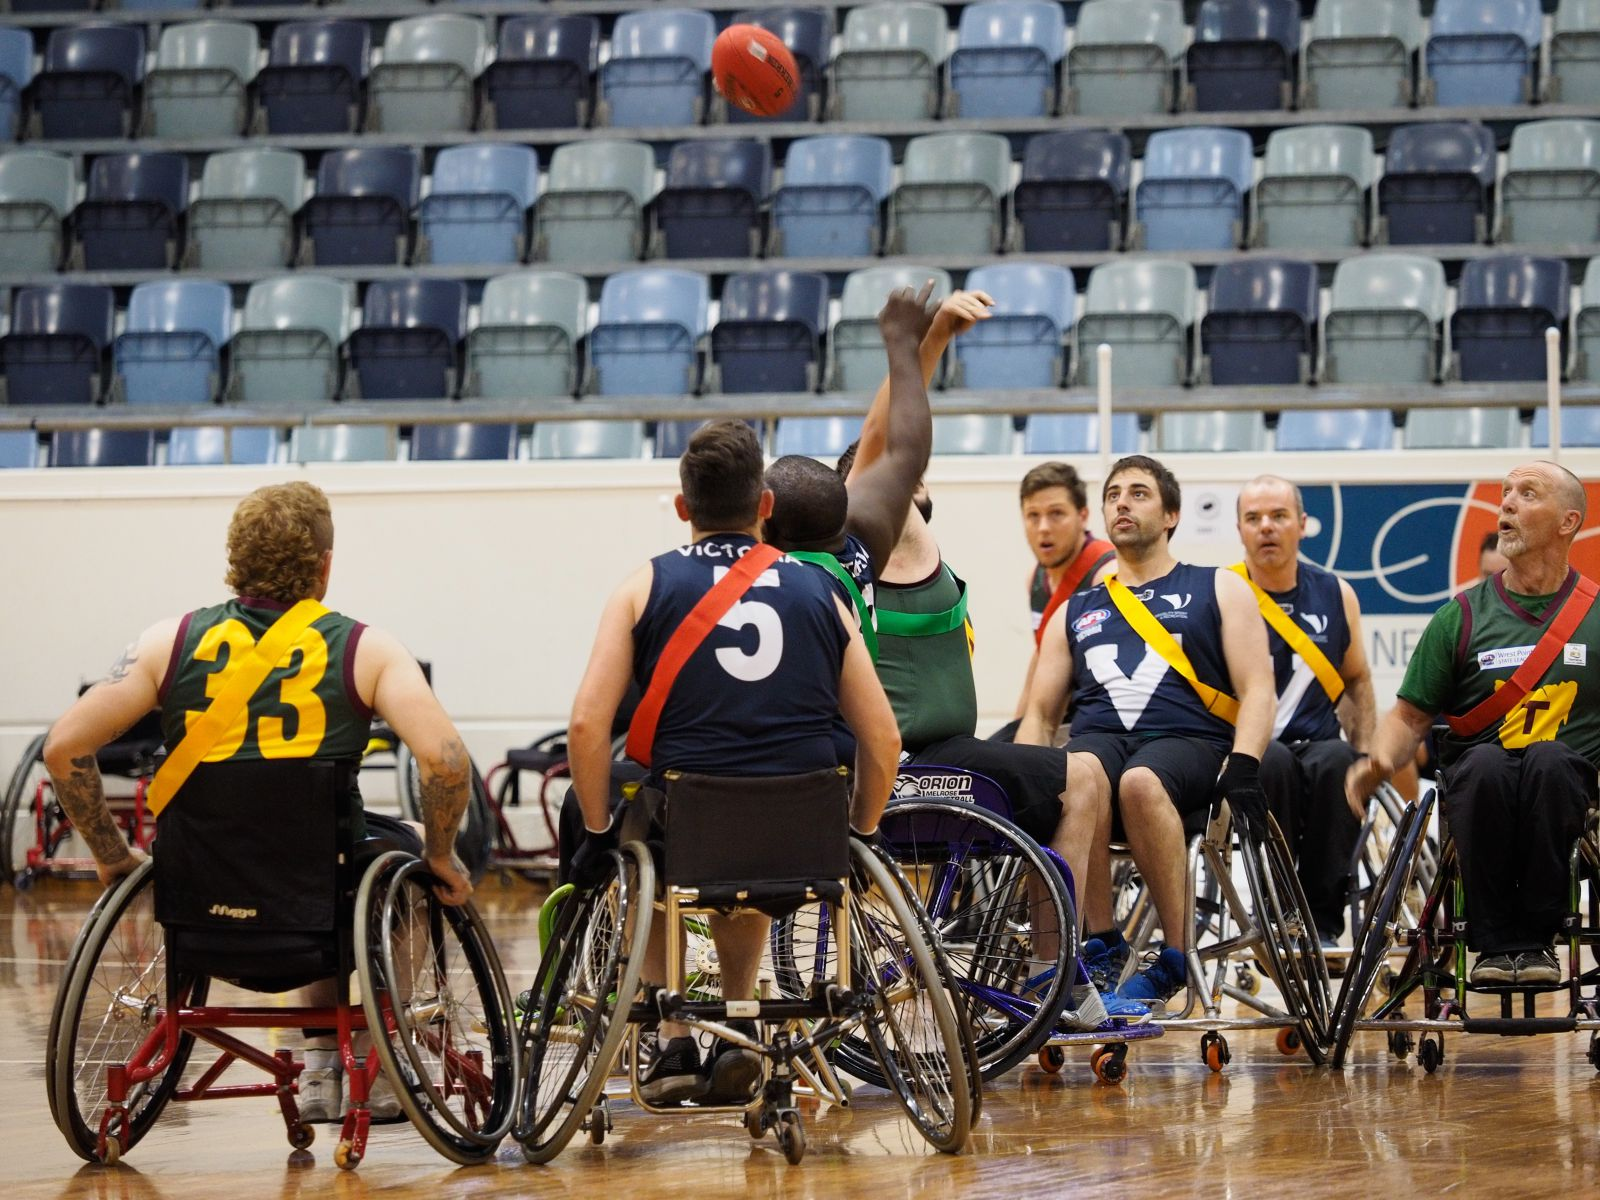 American football players in wheelchairs on an indoor court